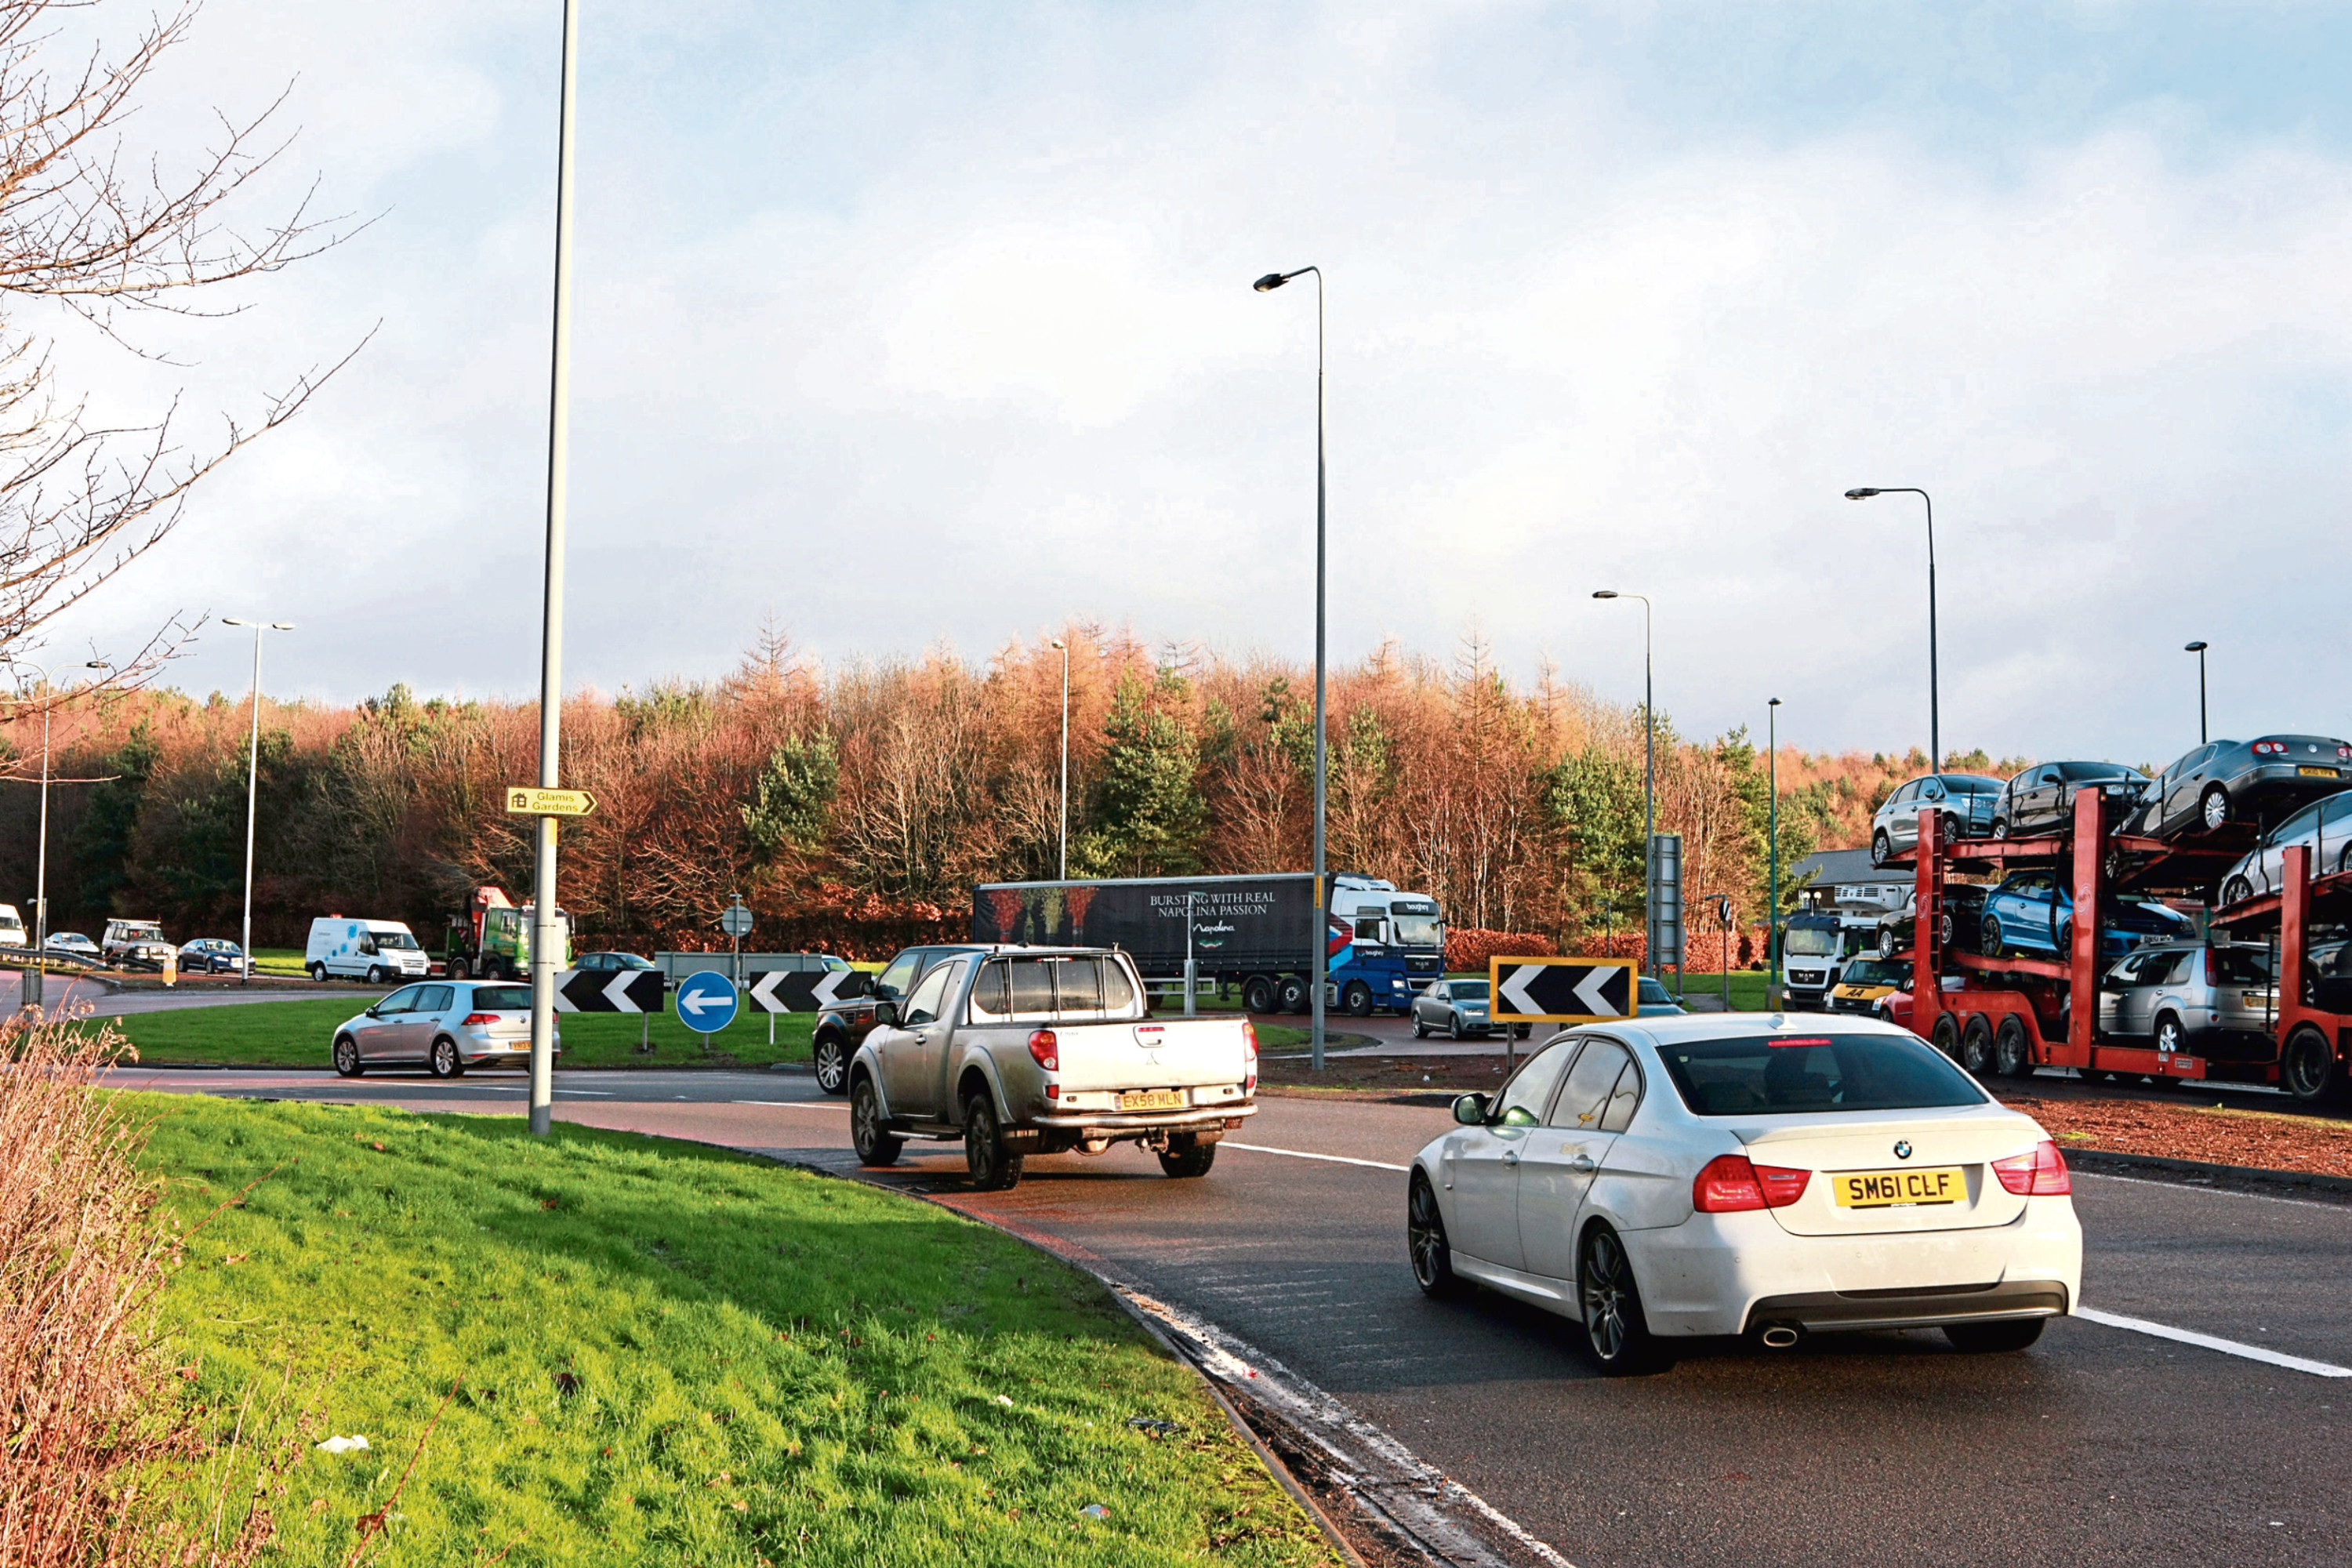 The Swallow Roundabout.